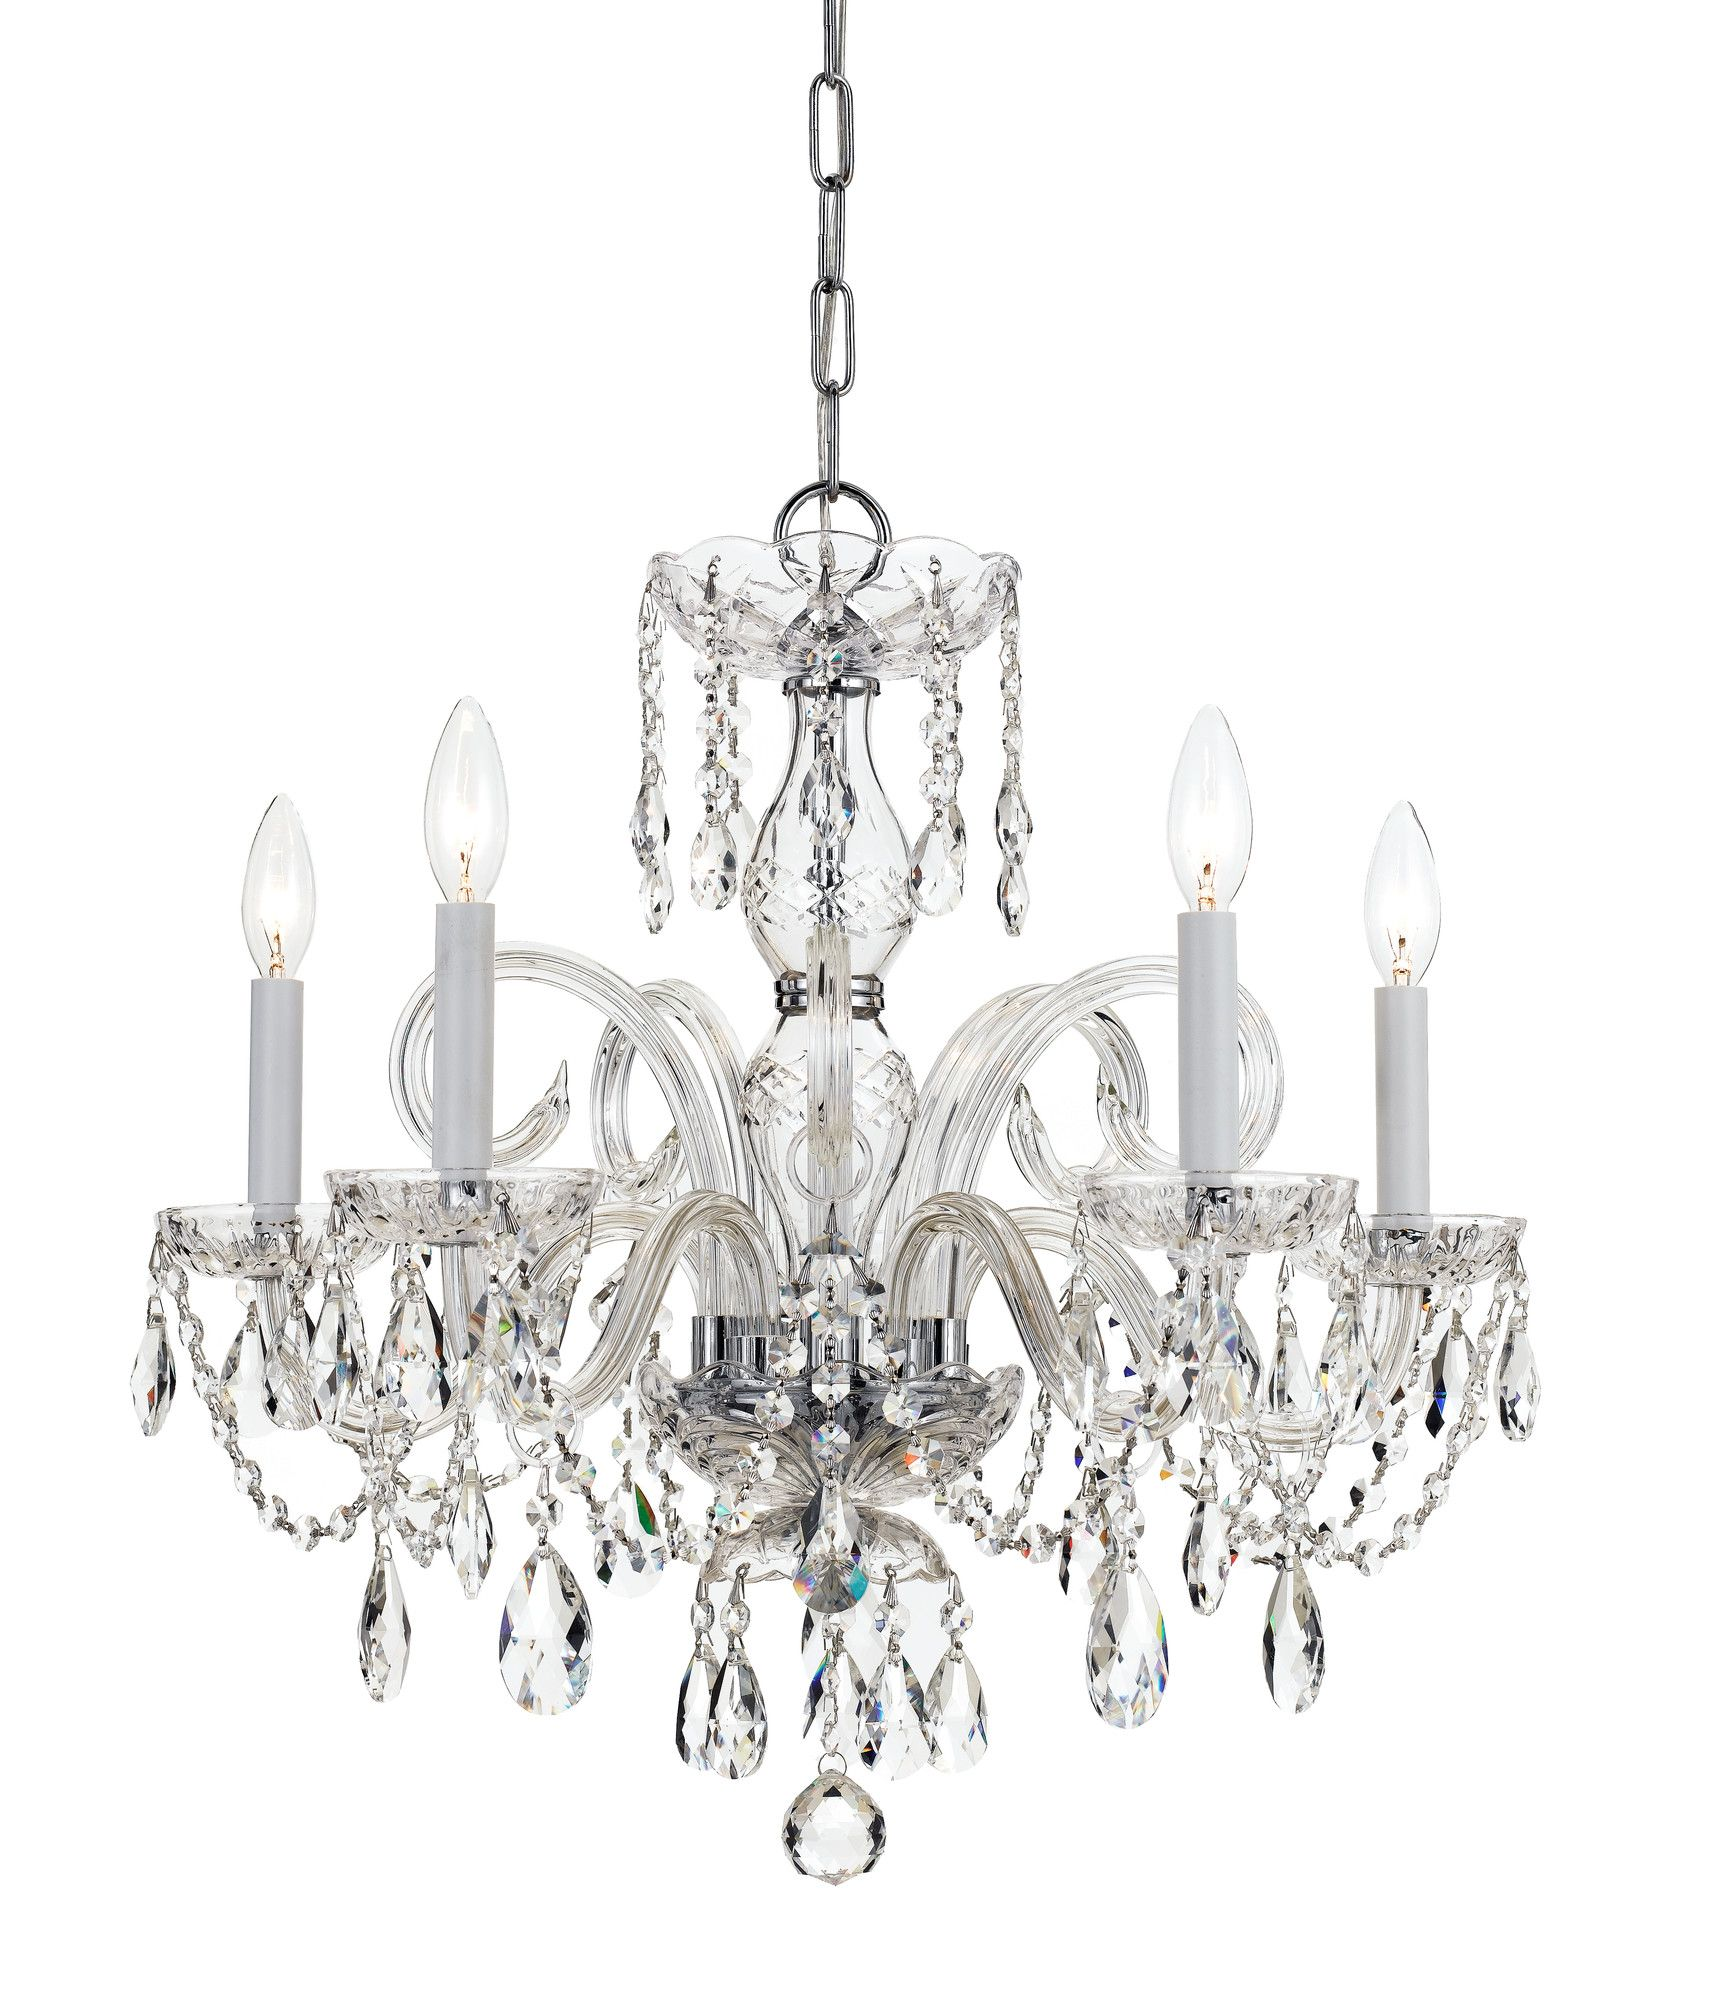 Traditional crystal 5 light glass chandelier products pinterest traditional crystal 5 light glass chandelier arubaitofo Image collections